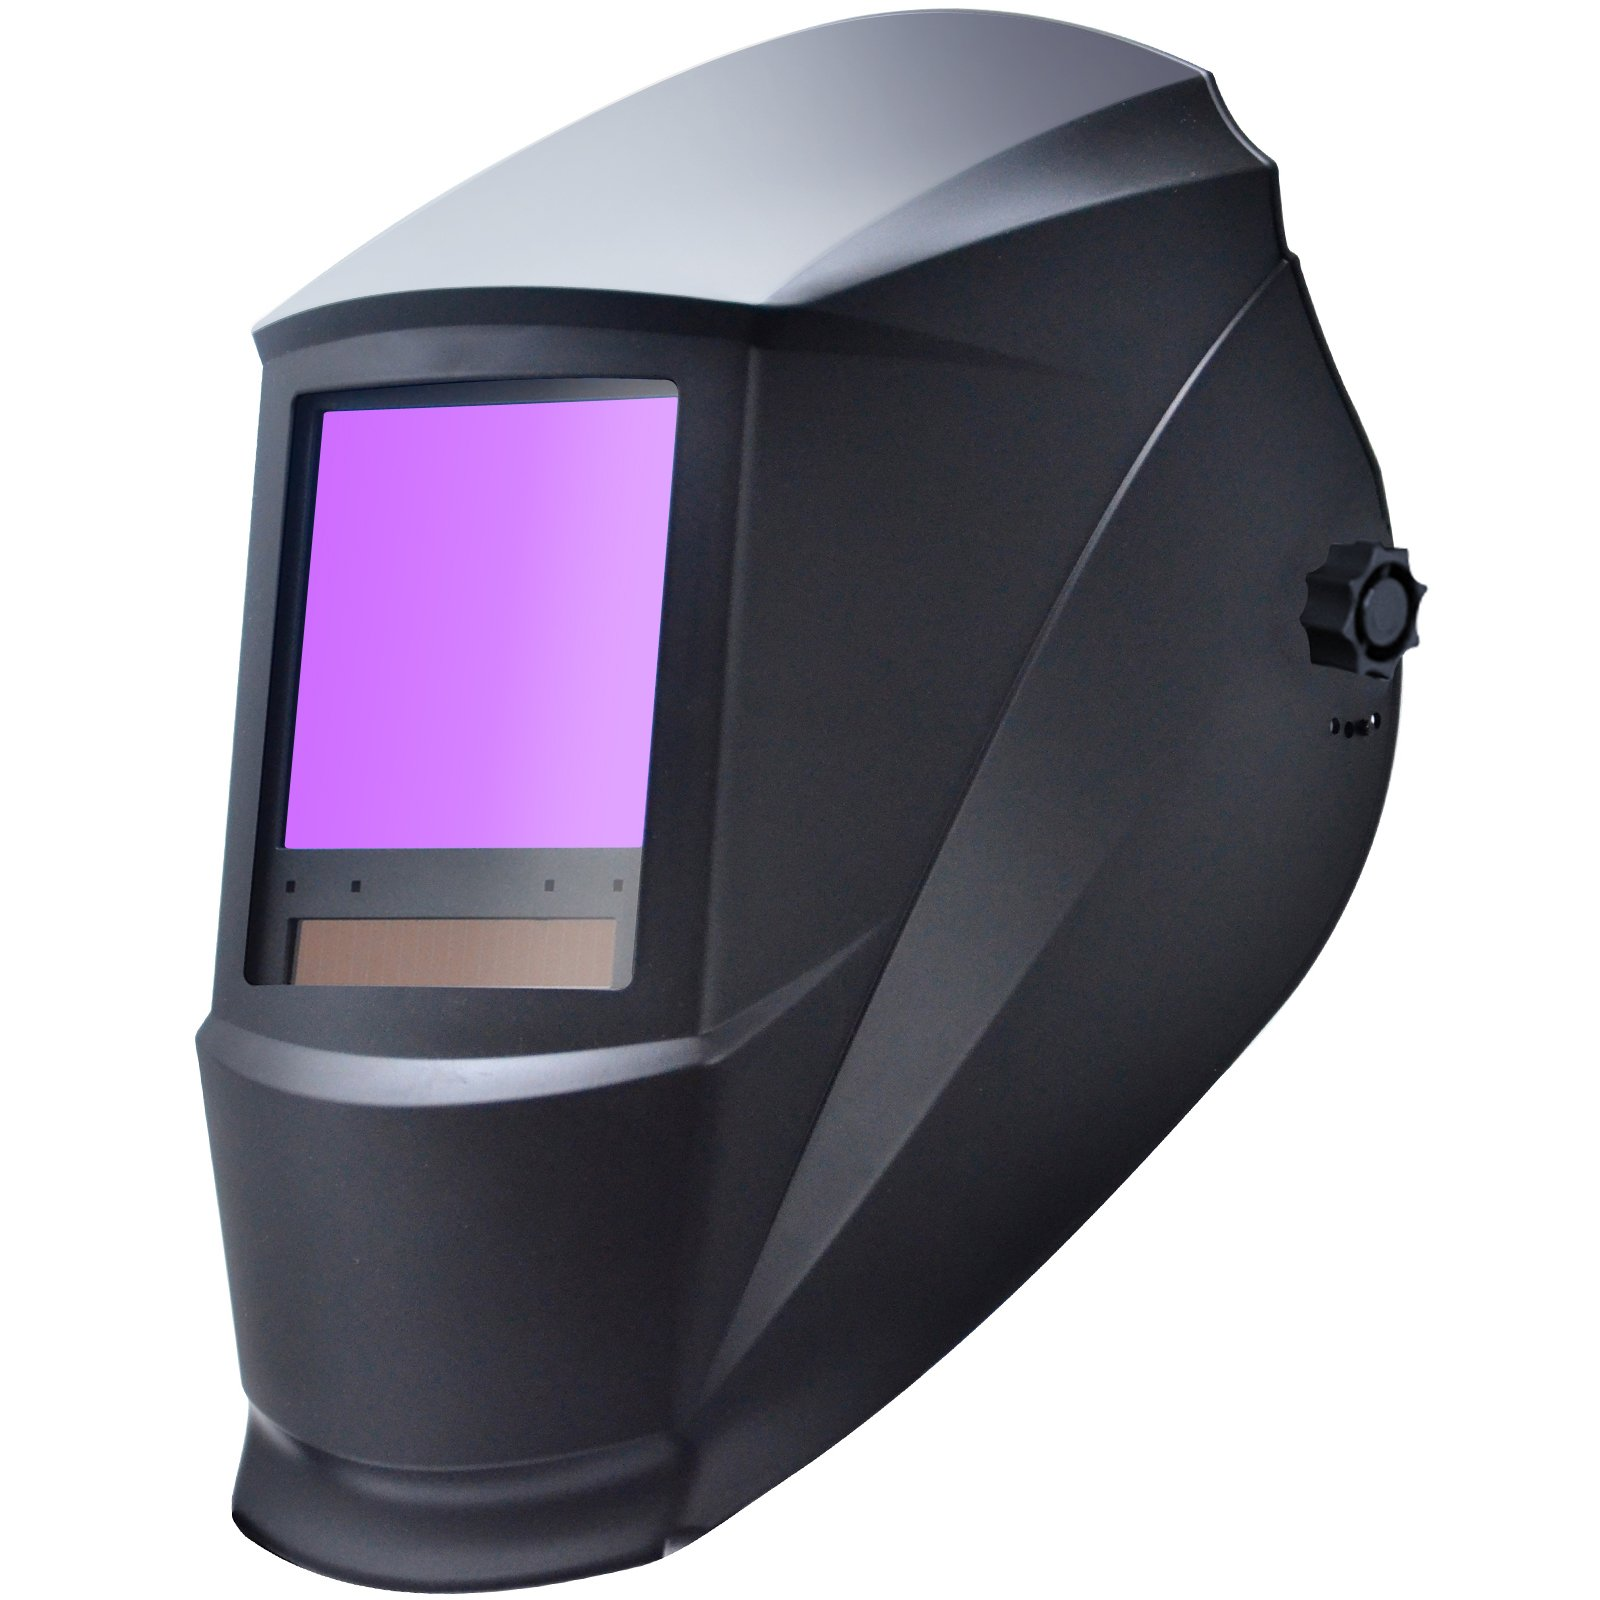 Antra Welding Helmet Auto Darkening AH7-860-0000 Huge Viewing Size 3.86X3.5'' Wide Shade Range 4/5-9/9-13 Great for TIG MIG/MAG MMA Plasma, Grinding, Solar-Lithium Dual Power, 6+1 Extra Lens Covers by Antra